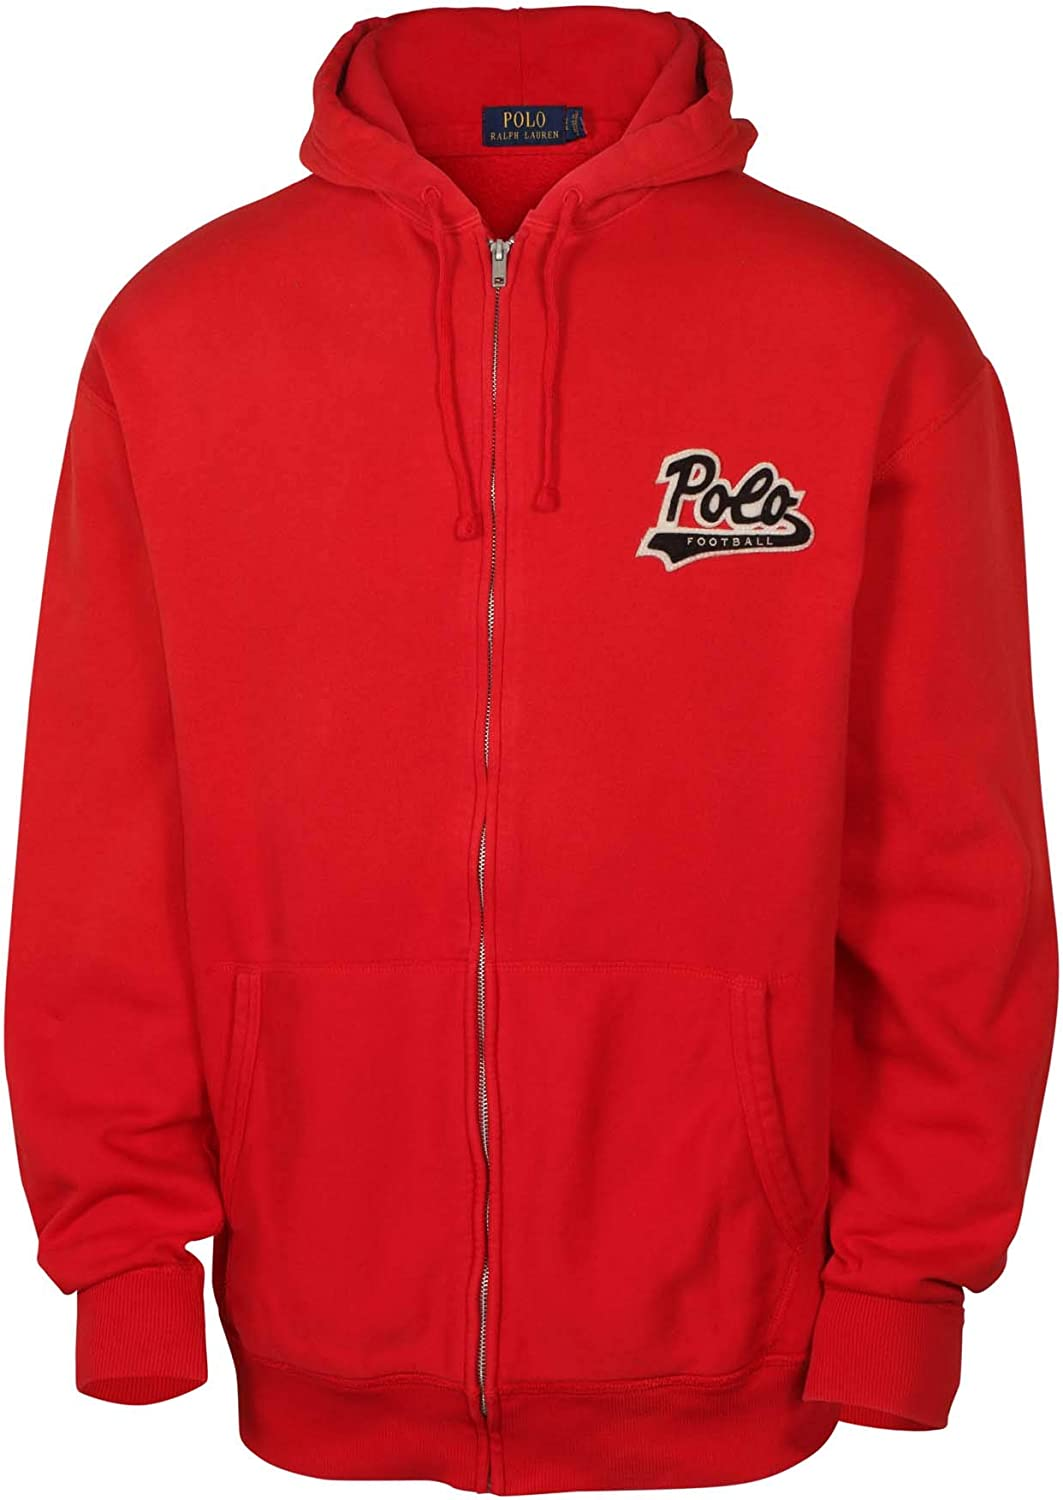 Polo Ralph Lauren Mens Big /& Tall Polo Varsity Football Logo Hoodie Sweatshirt